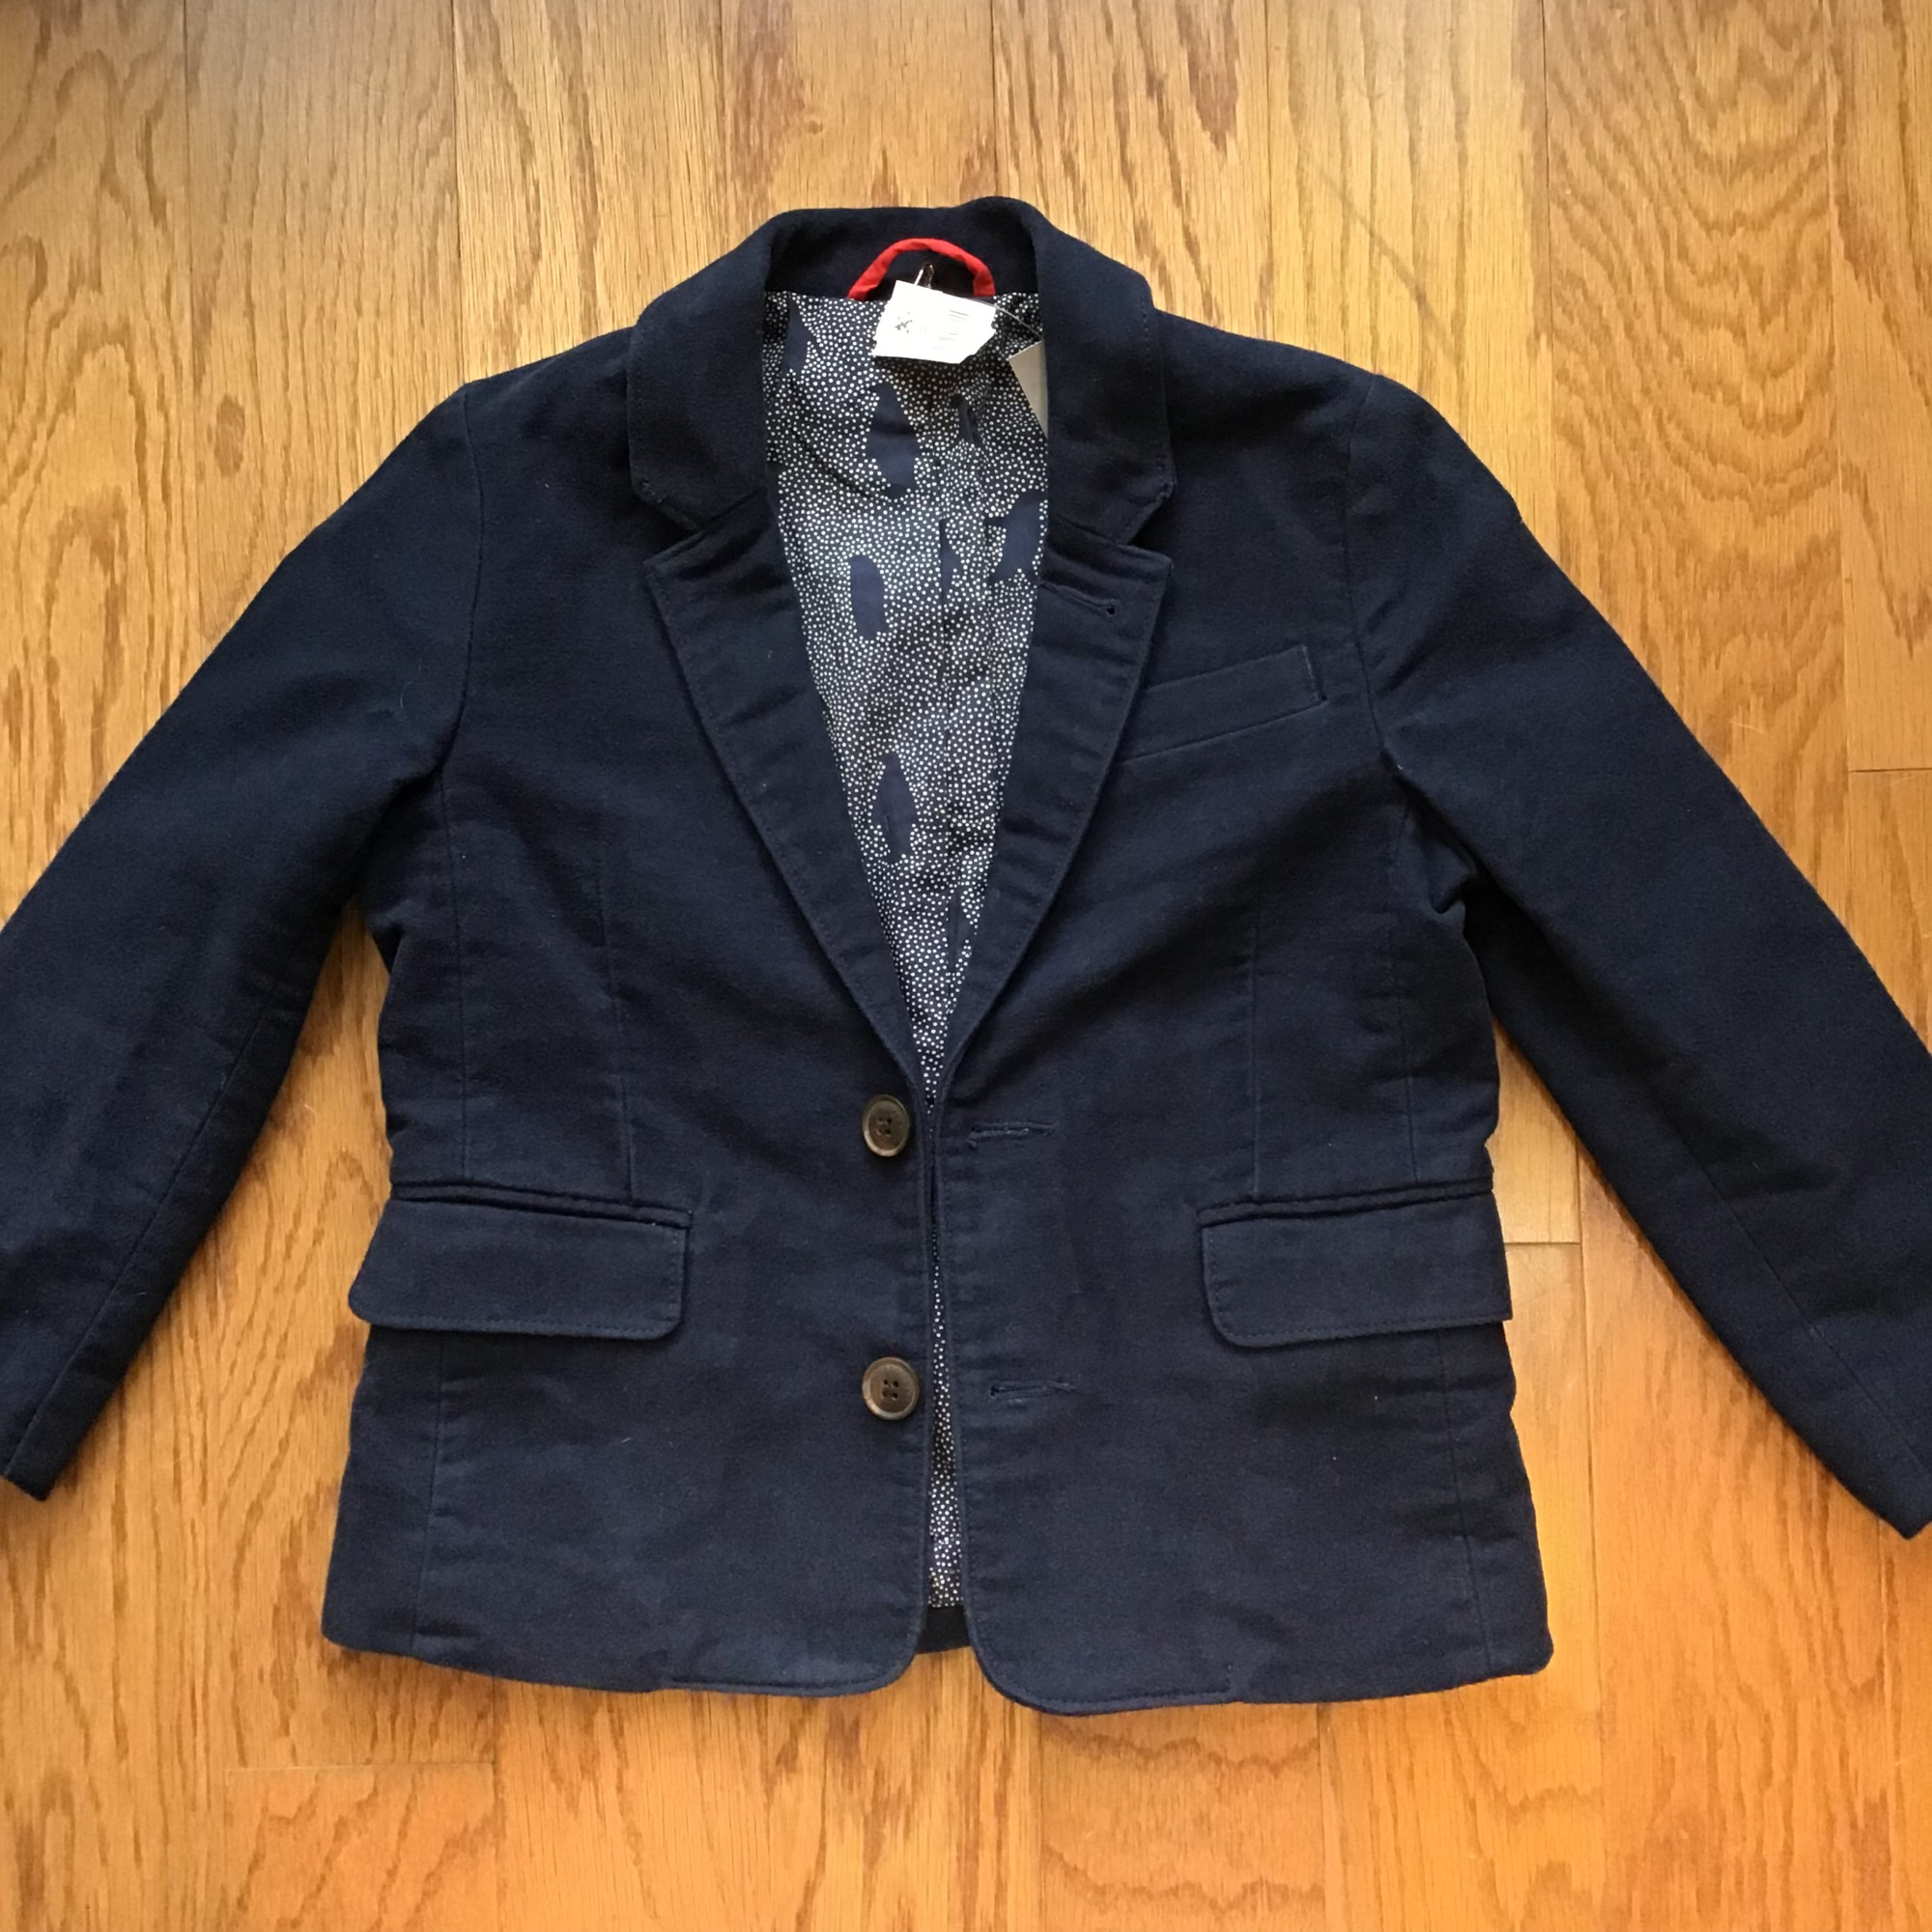 Mini Boden Blazer, Navy, Size: 5-6<br /> <br /> <br /> Fabric feels suede like<br /> <br /> <br /> ALL ONLINE SALES ARE FINAL. NO RETURNS OR EXCHANGES.